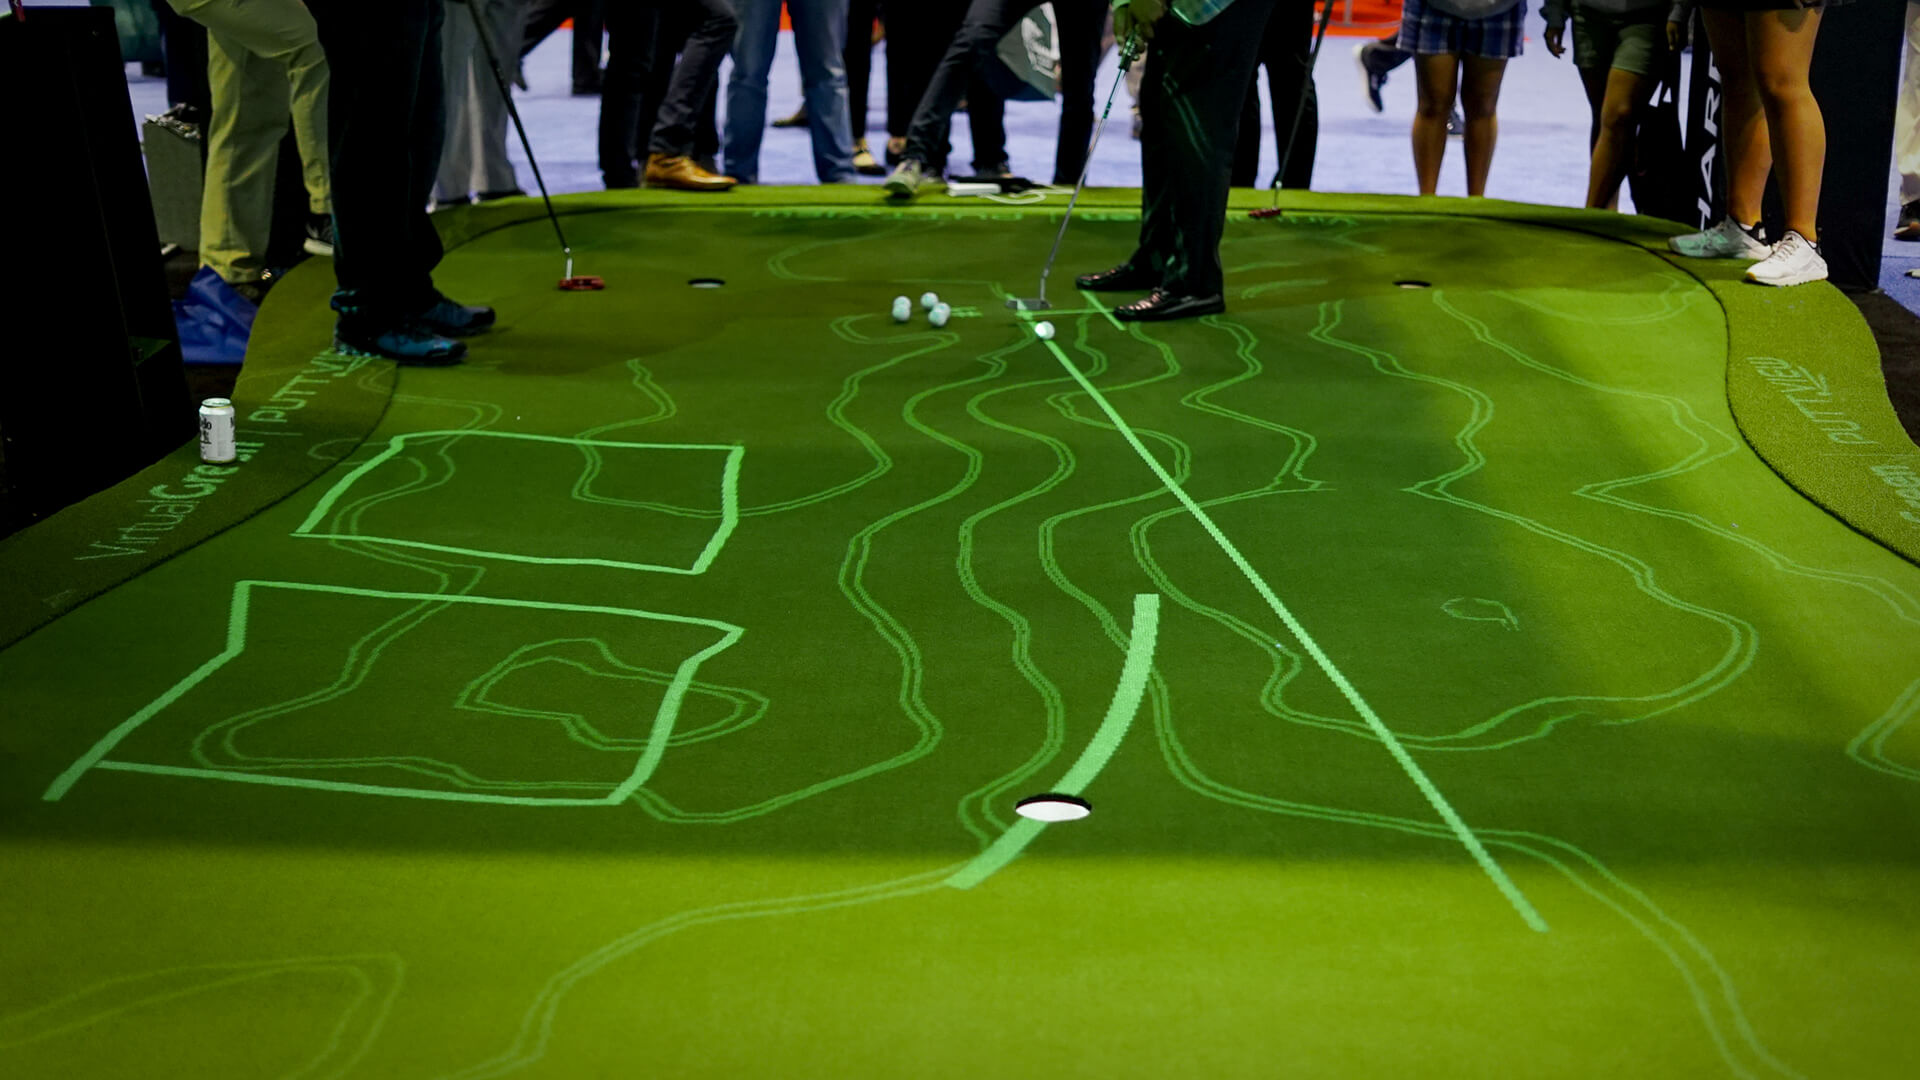 PuttView offers you almost endless possibilities in terms of practice. You can place the ball on any spot of the green and PuttView will tell you everything you need to know about that putt. Add various visual cues and fun games to the mix, and you will never want to leave the putting green. ©puttview.com